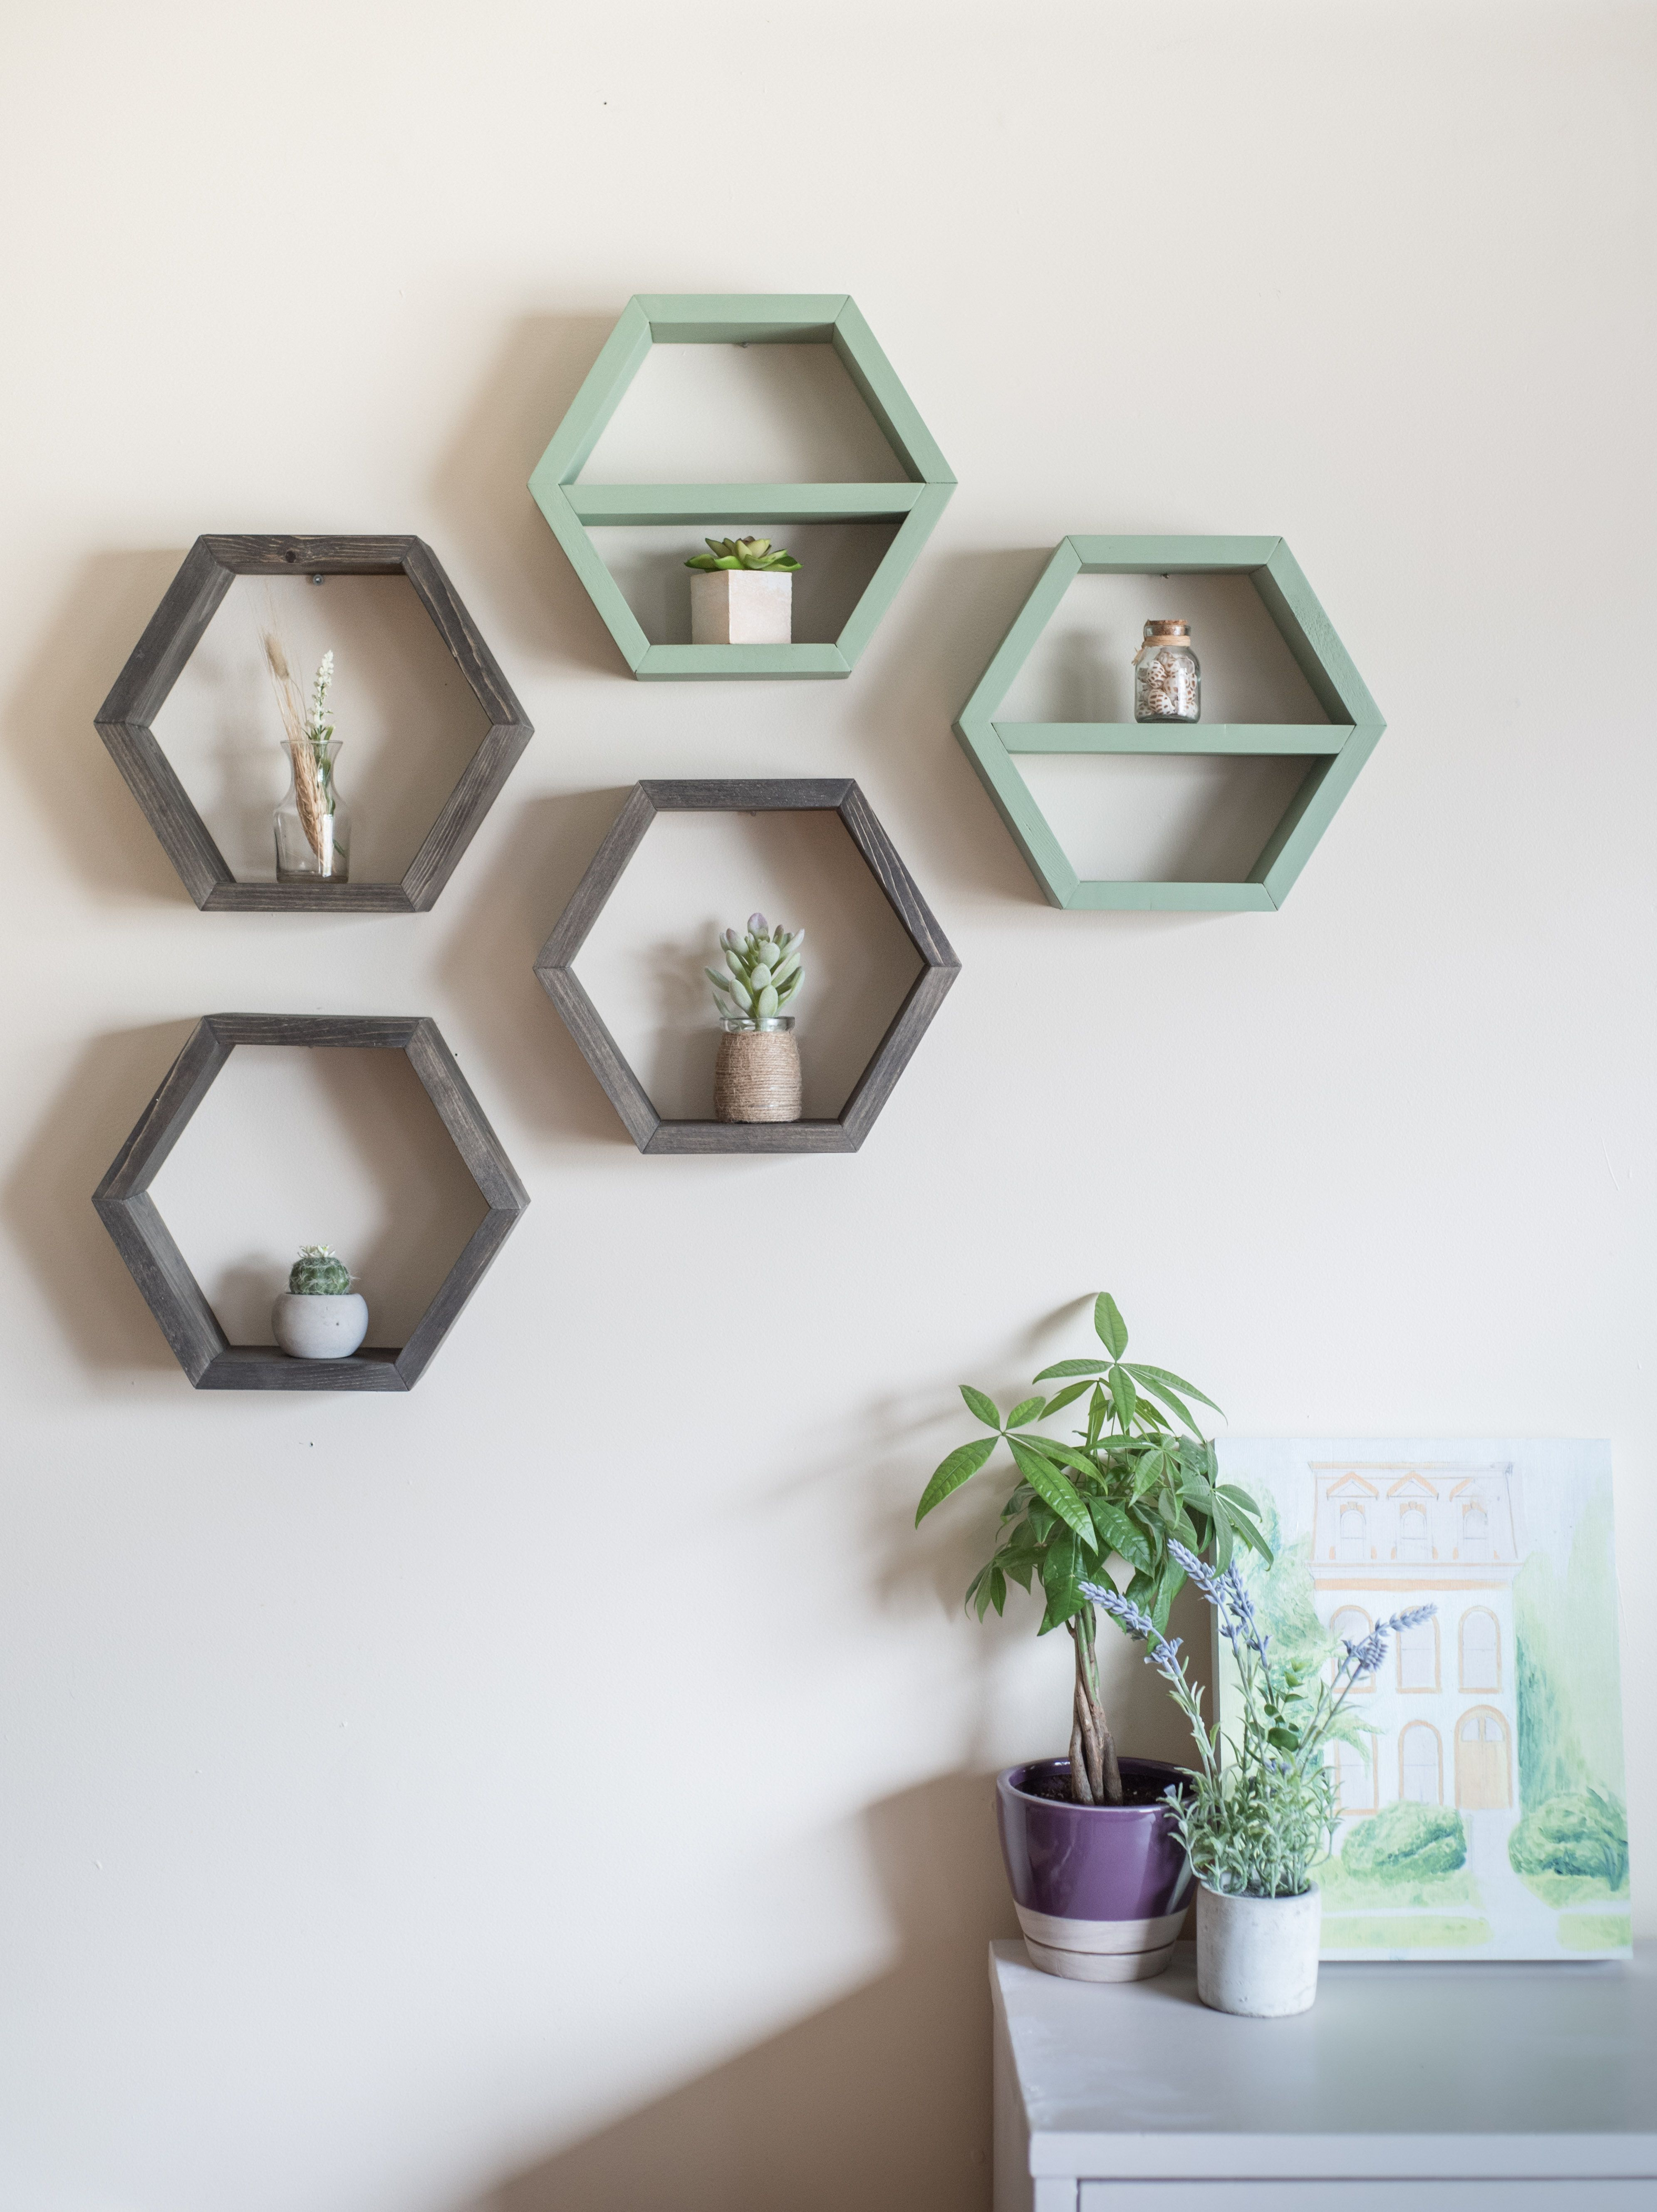 Mix Match Hexagon Shelf Sets From Timber Grove Studios On Etsy These Versatile Honeycomb Floating Shelves Are The Perf Home Decor Decor Handmade Home Decor